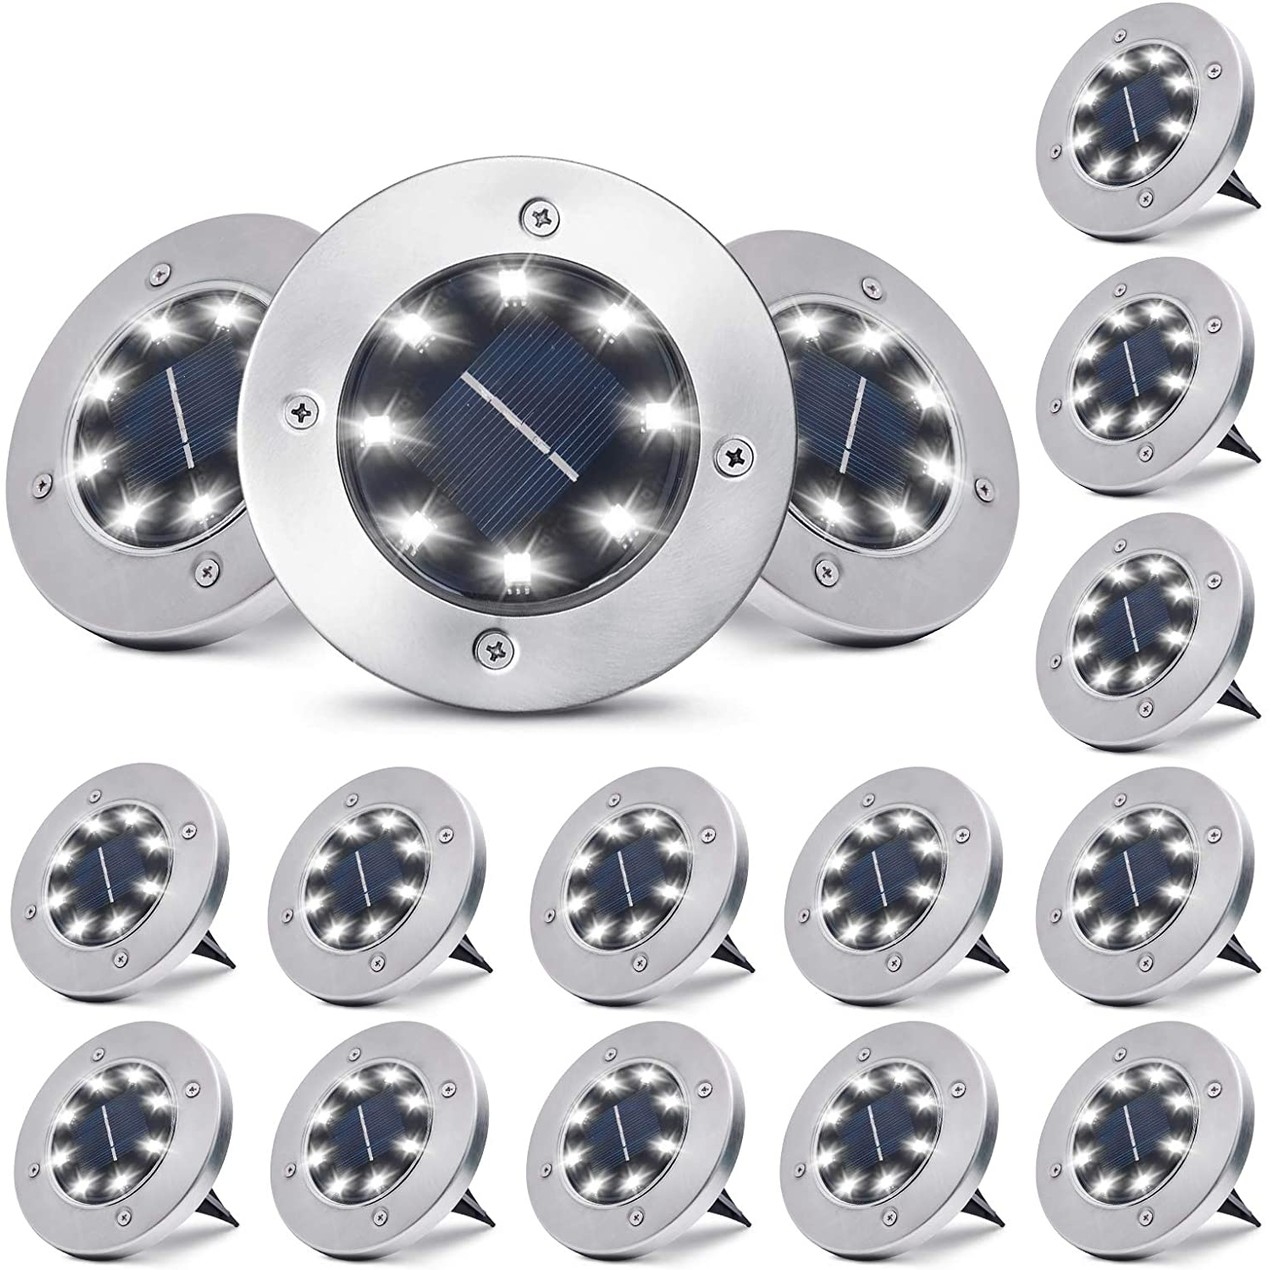 16-Pack Outdoor Waterproof Solar Ground/Pathway 8-LED Lights